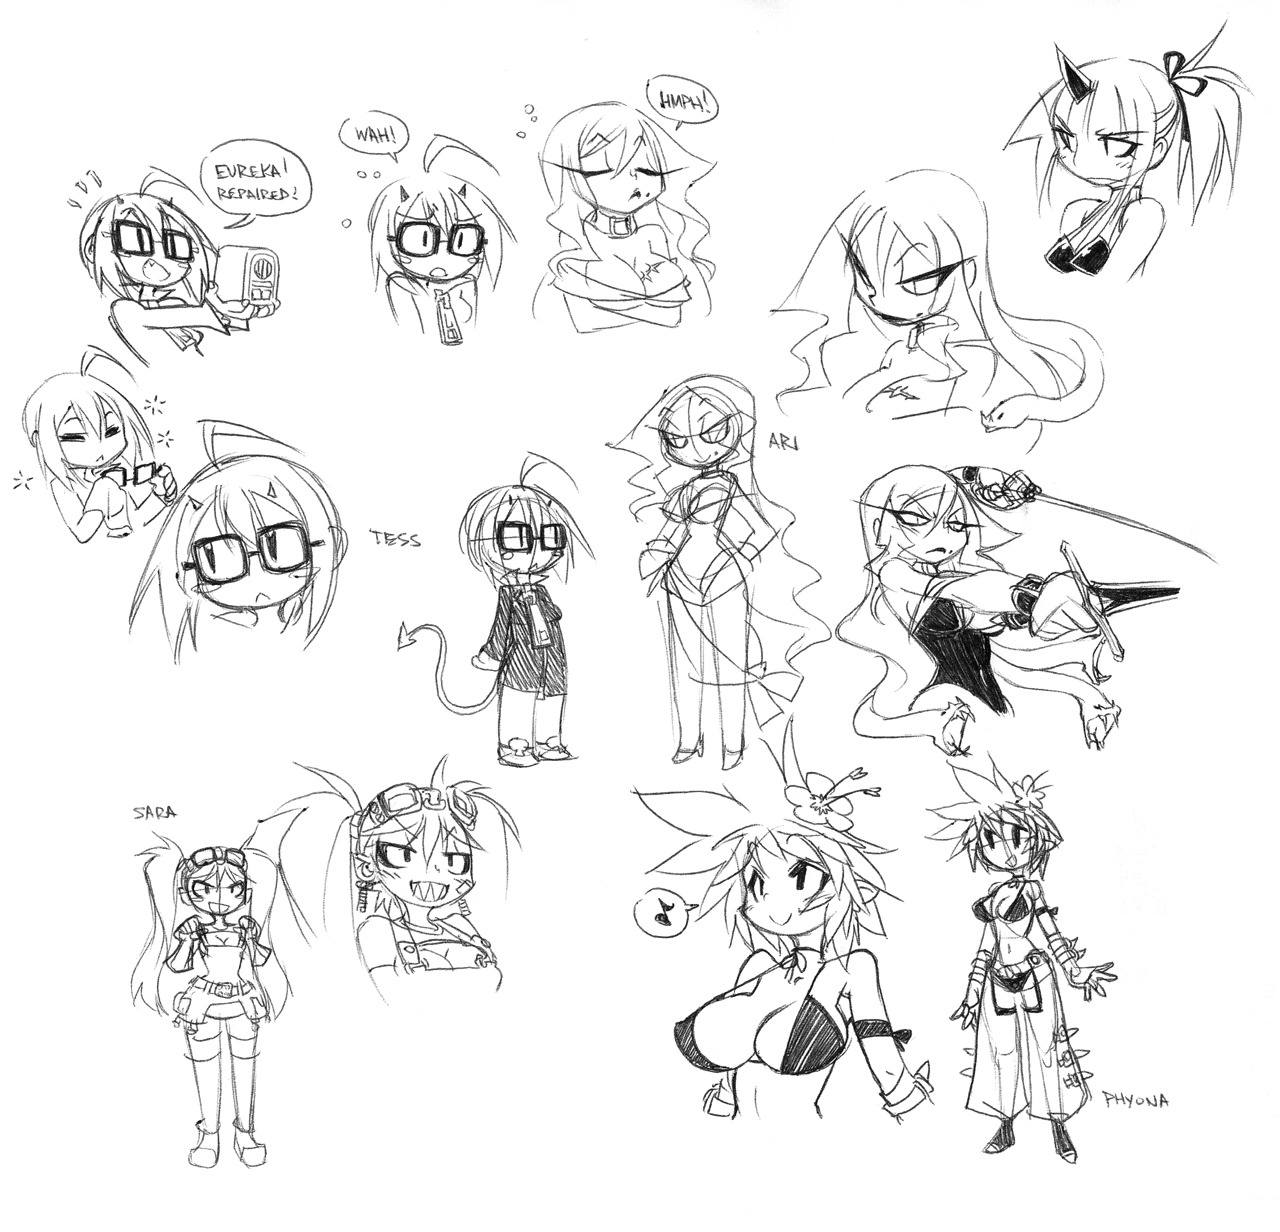 Various doodles of the Demon Mages Ziggy, Ari & Tess, plus older characters.  I really have to stop worrying and learn to love the bombs I drop.